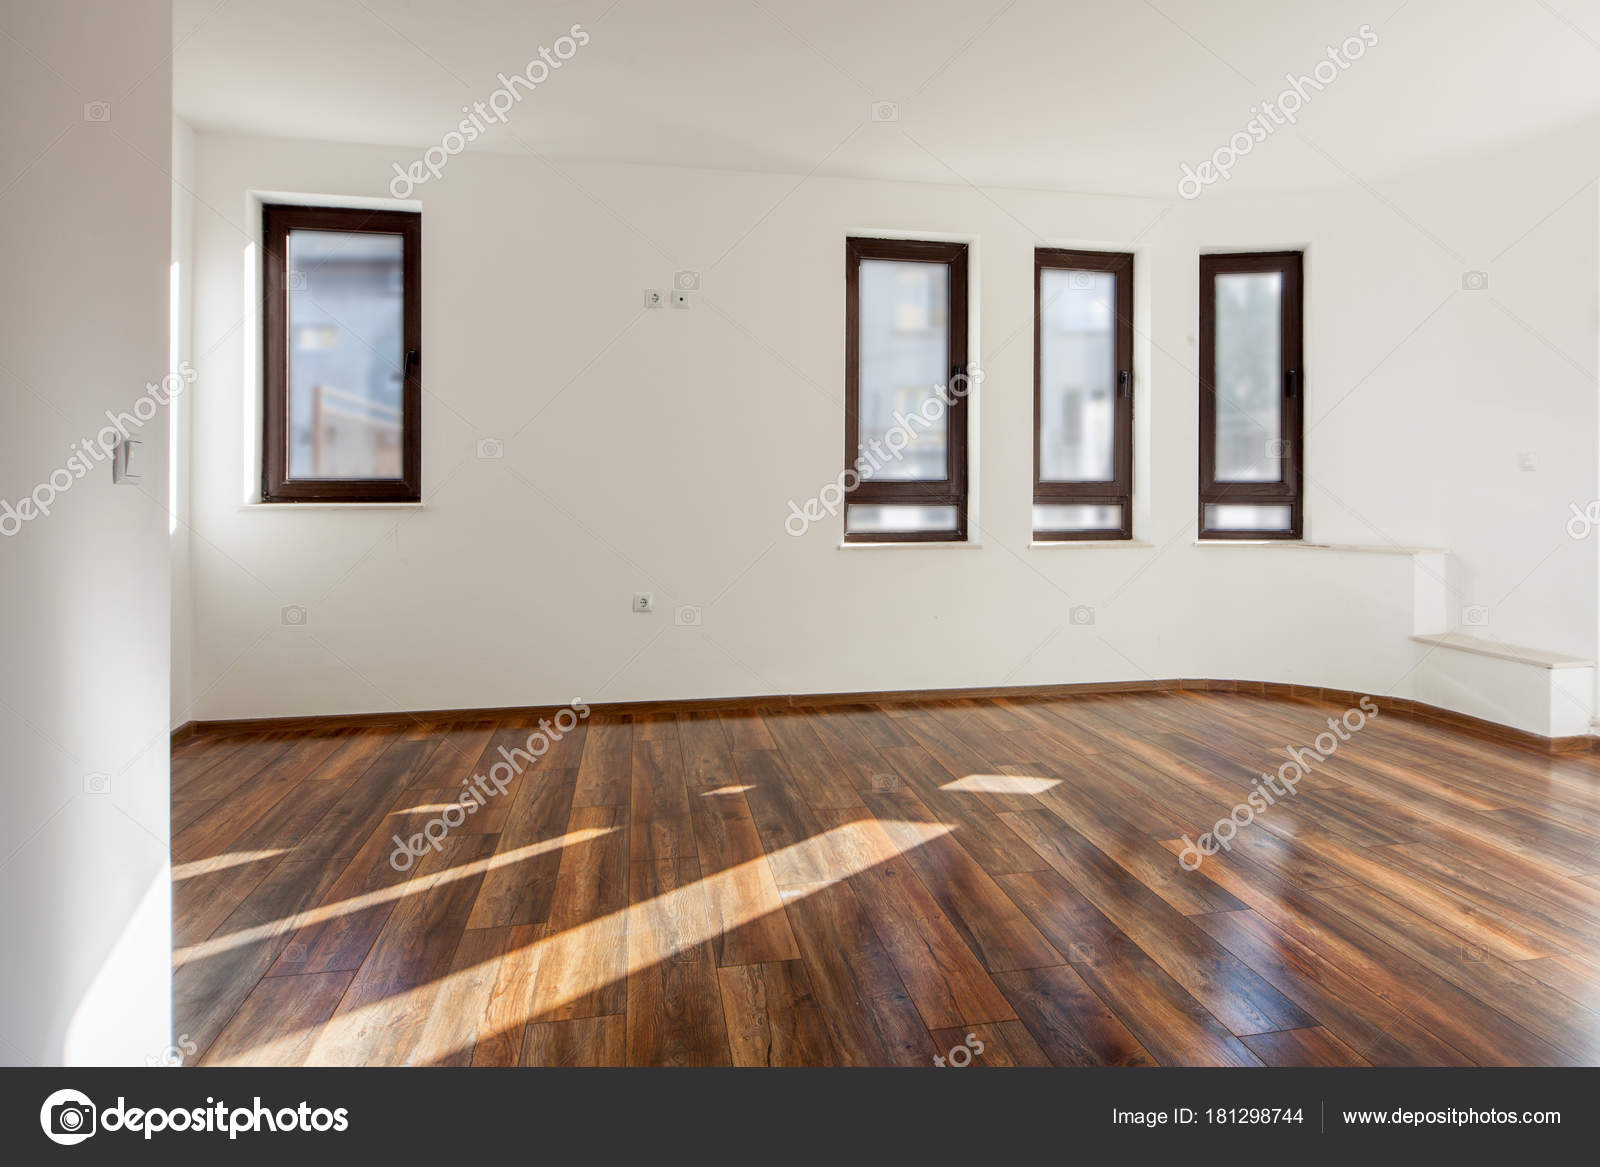 Empty room with natural light from windows modern house interior white walls wooden floor photo by dechevm